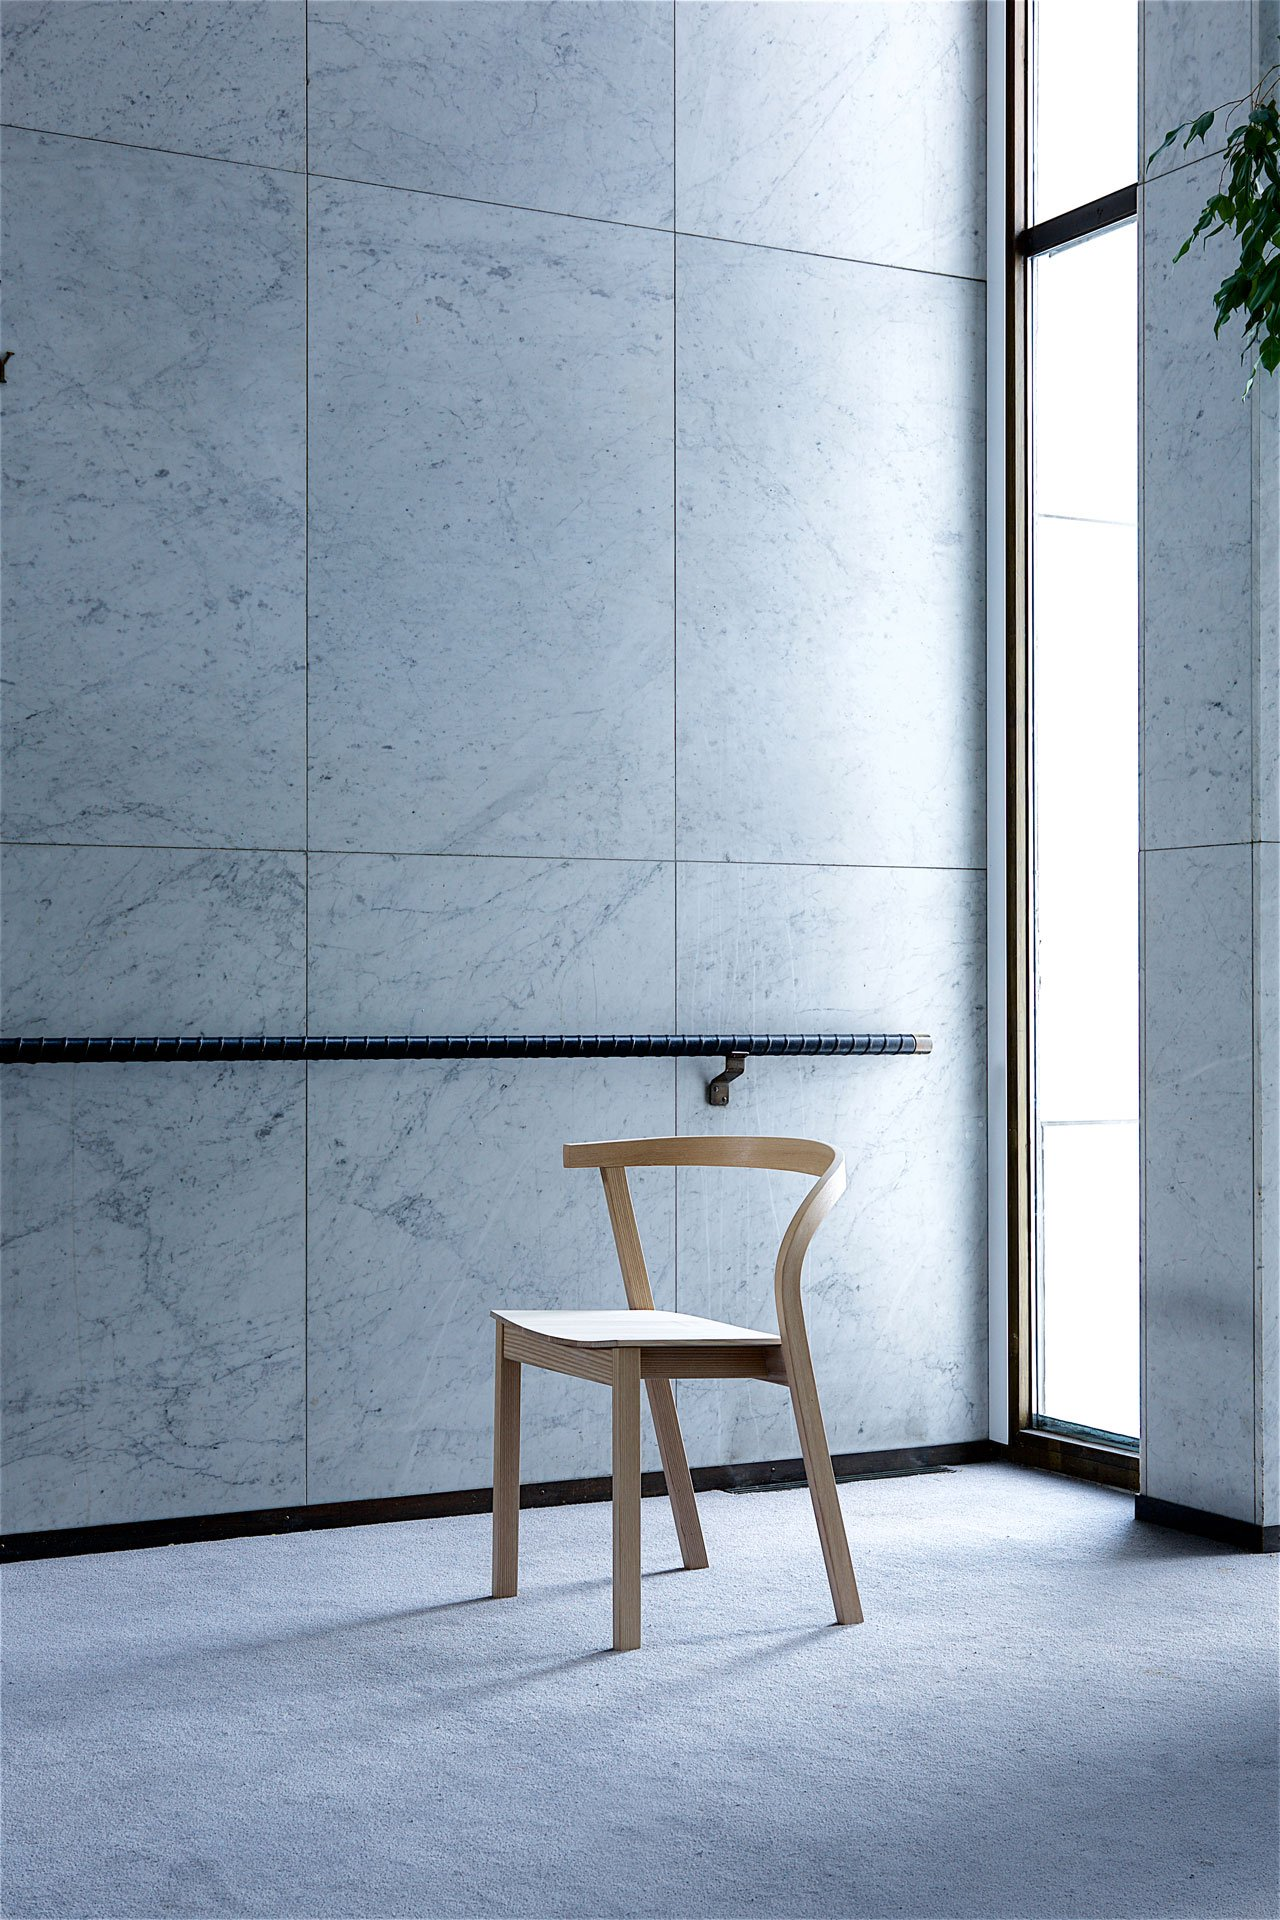 Another (side chair) by Antti Tuomi. (Salone Satellite)